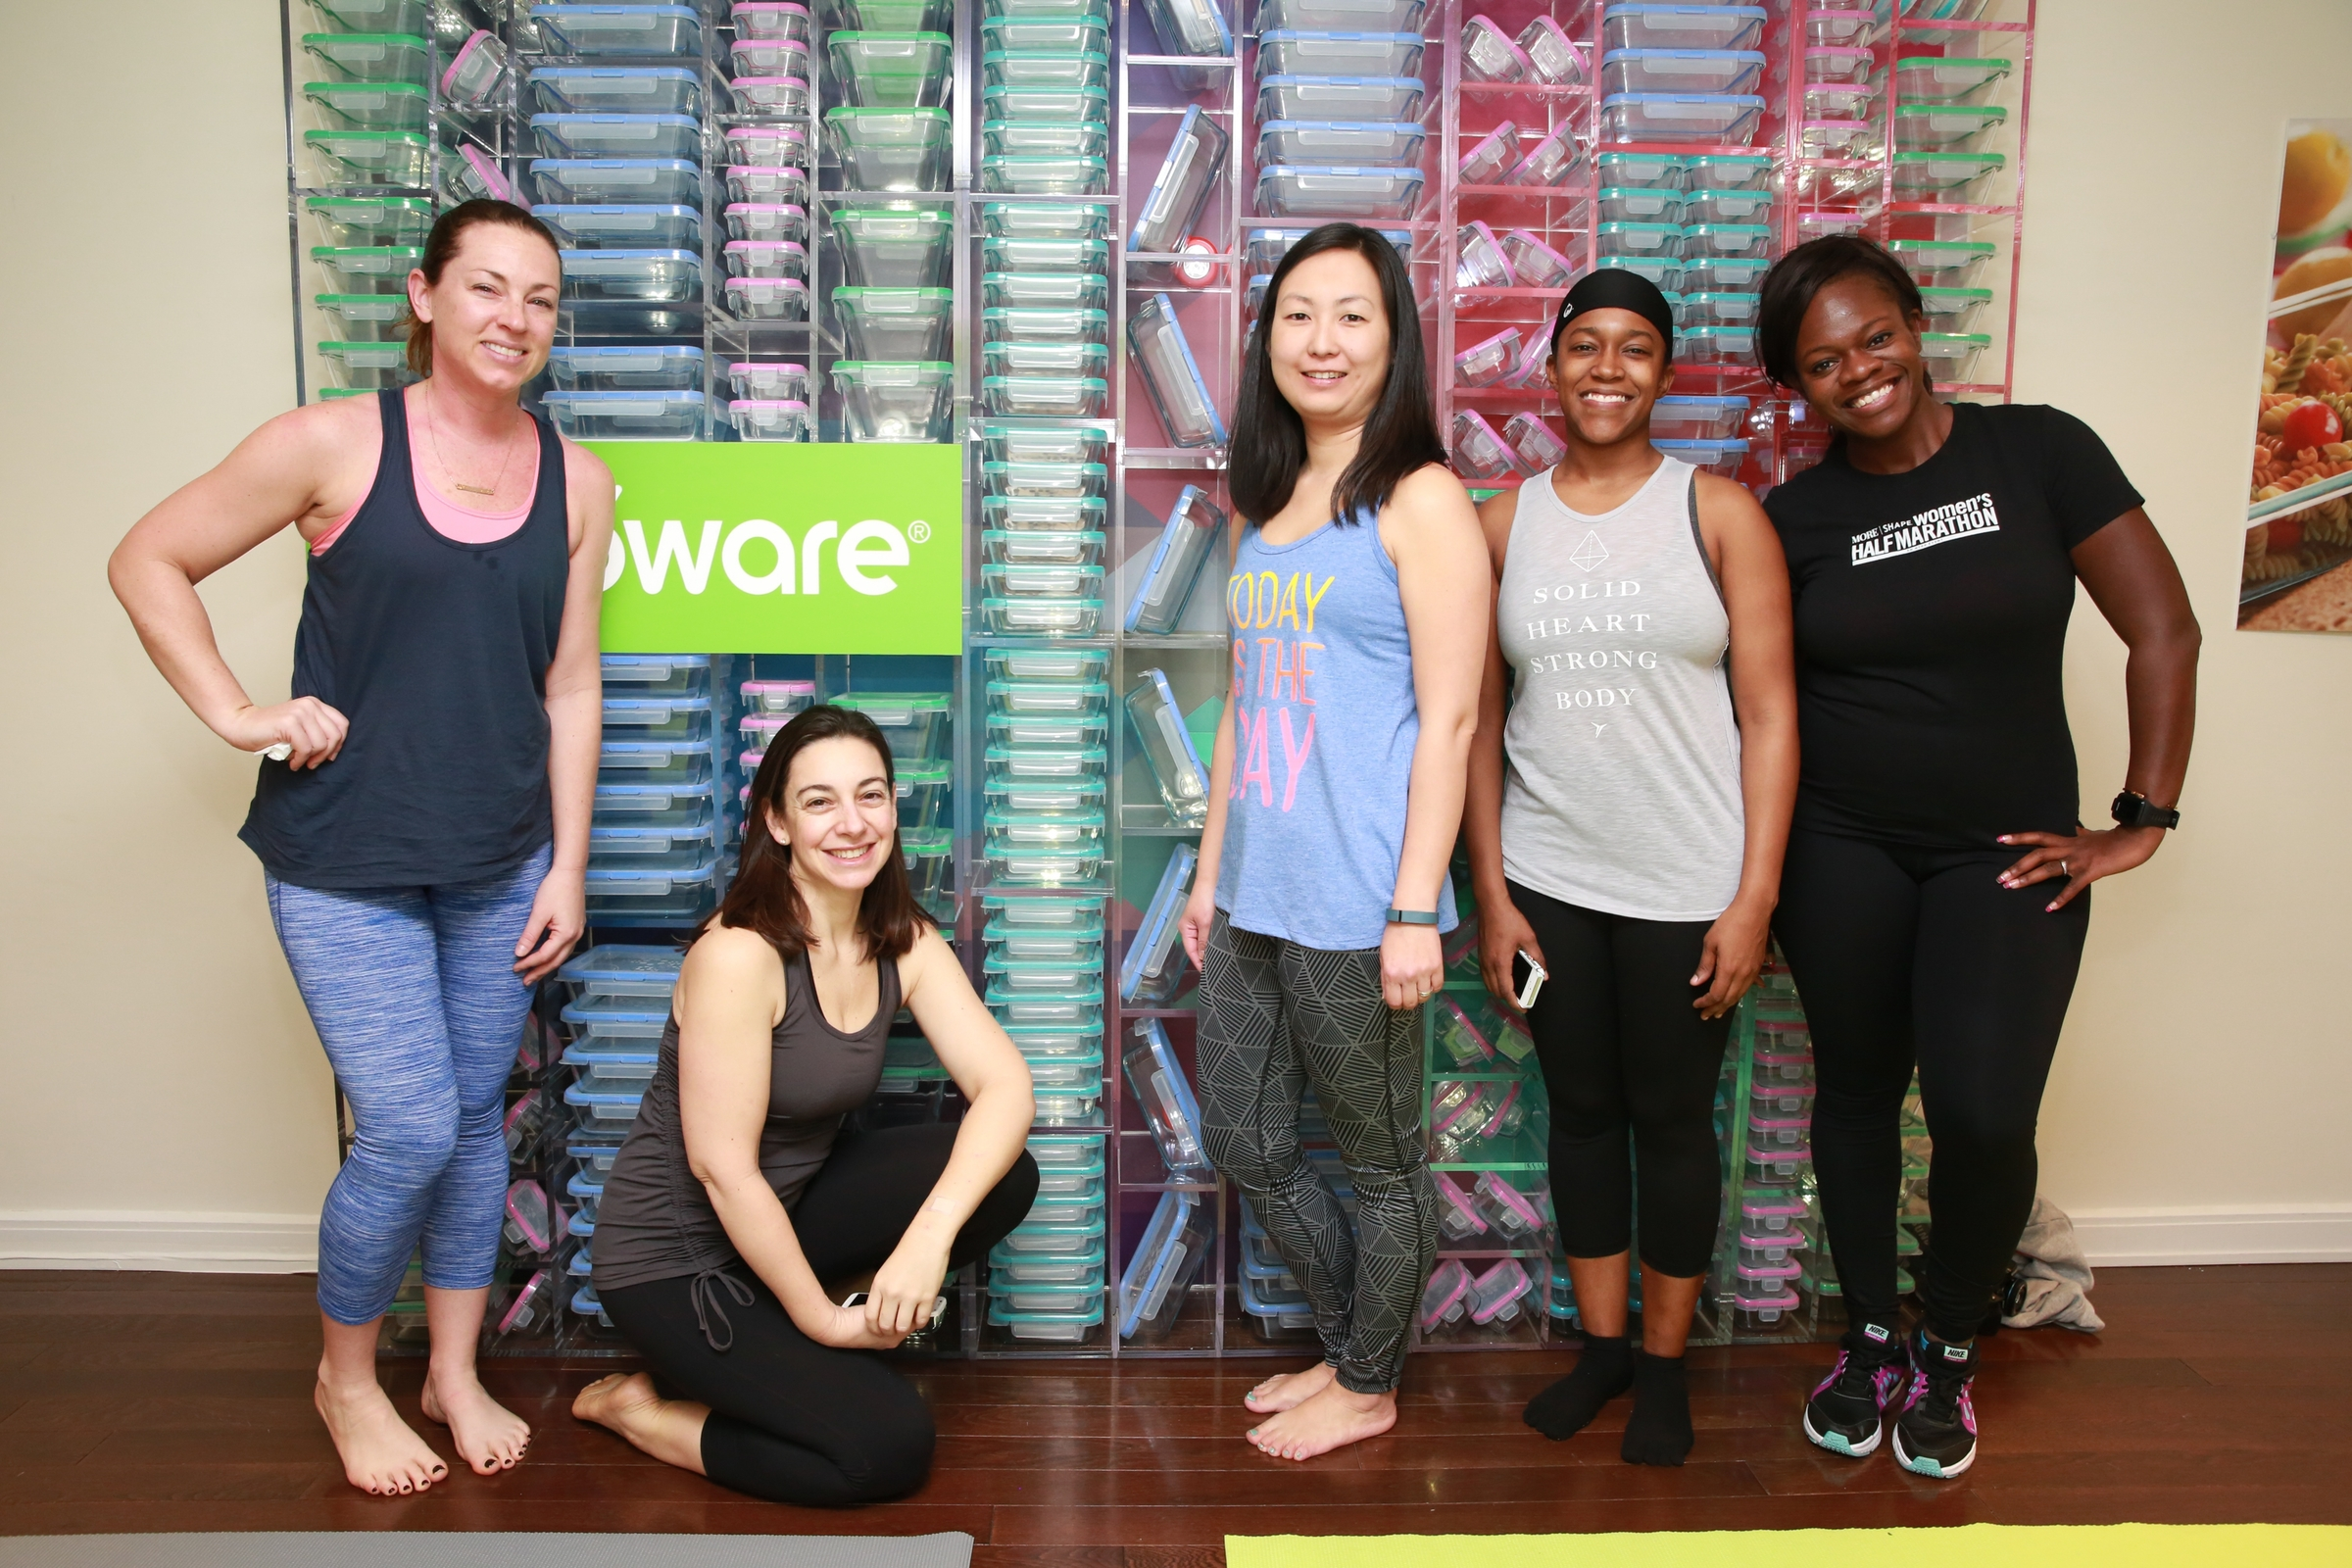 Bend & Snapware Yoga Event with Kristin McGee